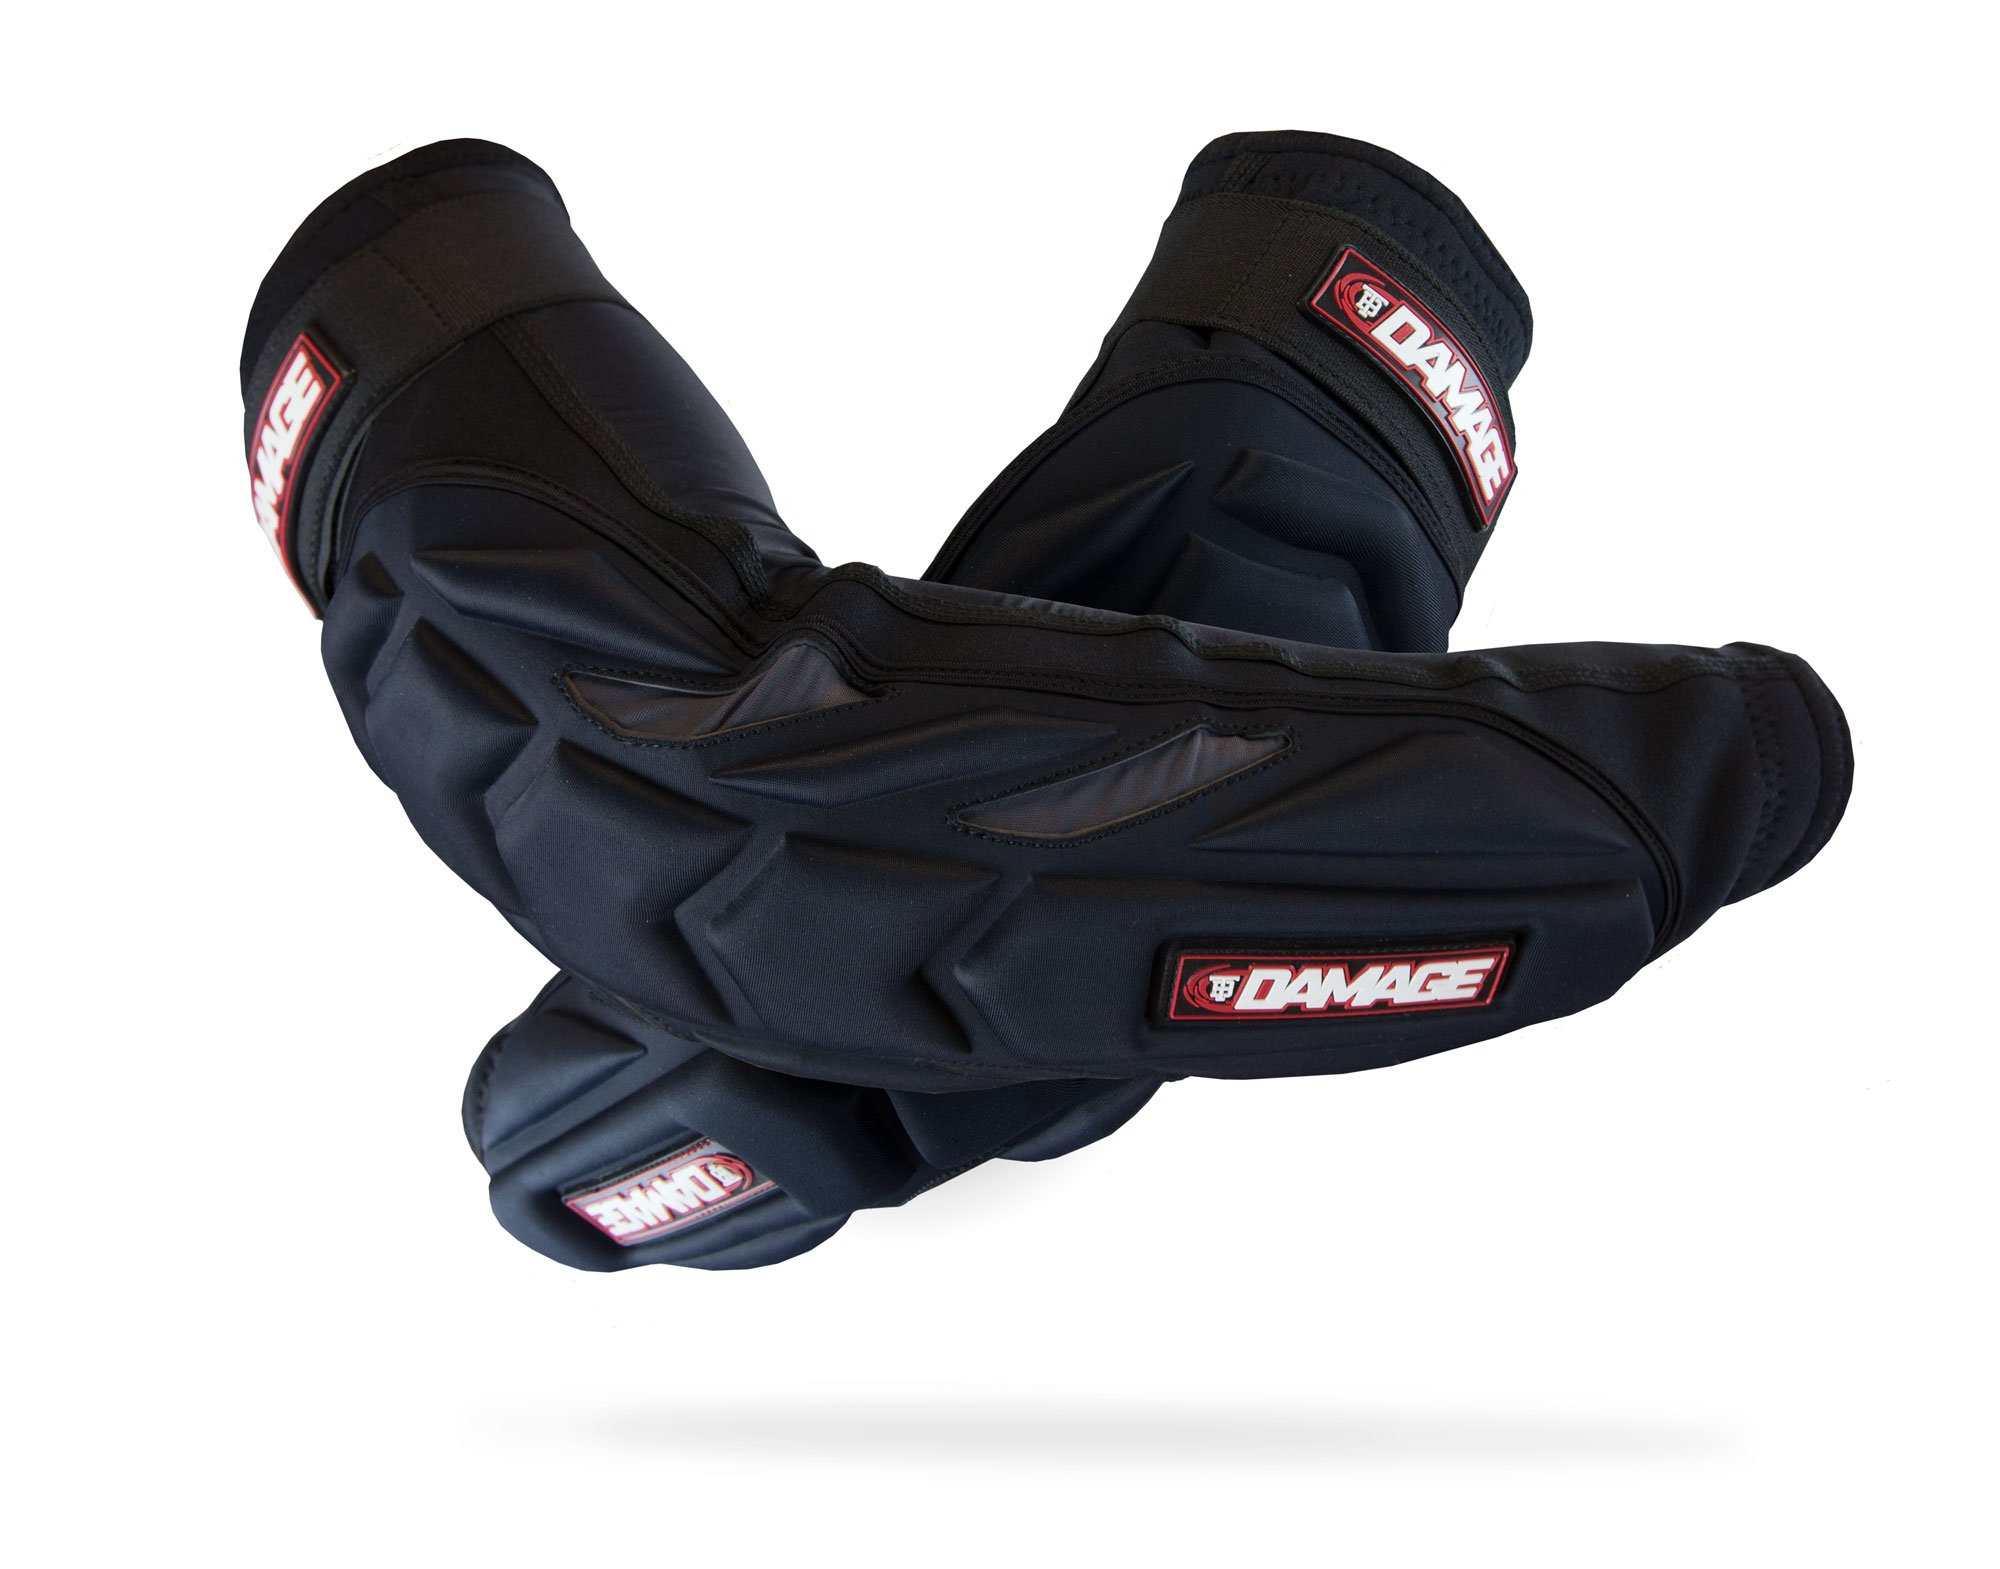 Damage Tampa Bay Elbow Pads w/Forearm Protection - Black - Small/Medium